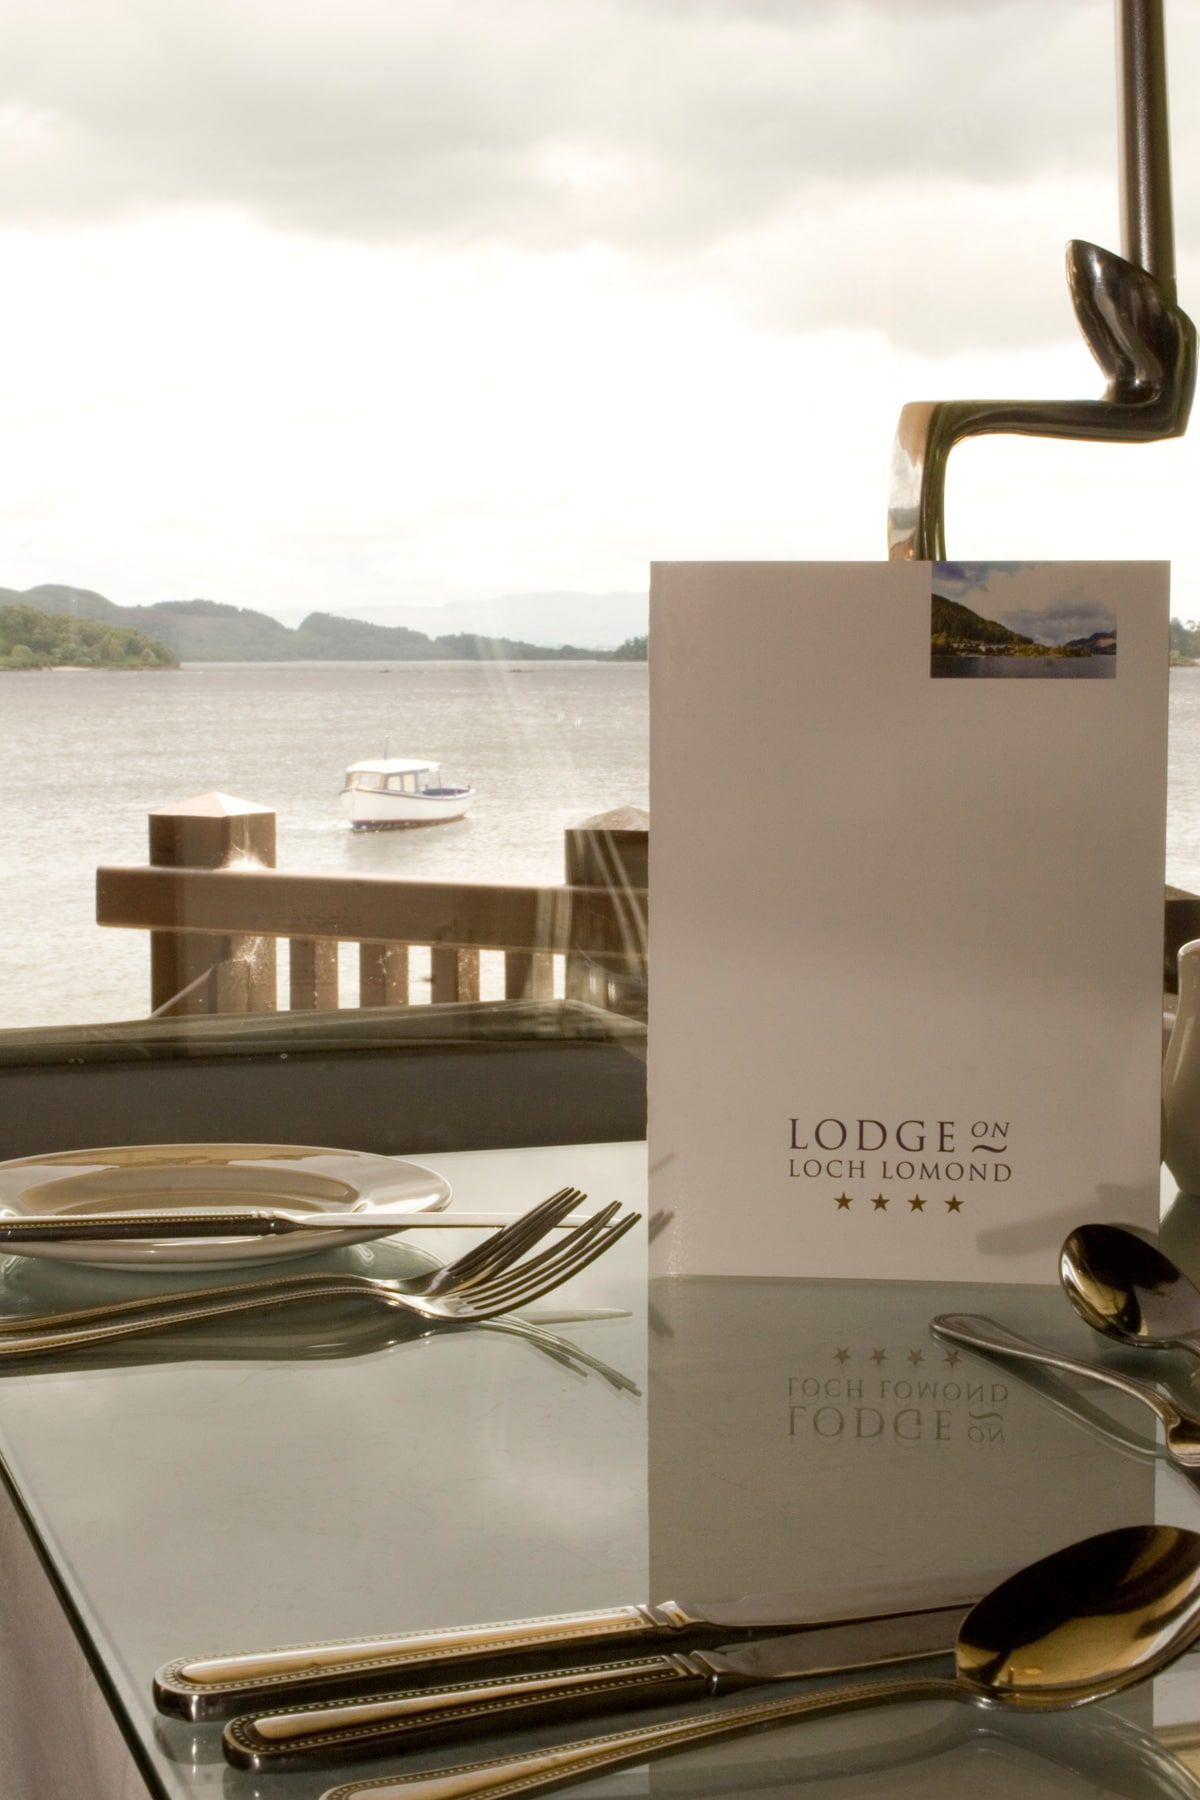 Lodge on Loch Lomond Restauarnt View over Loch Lomond